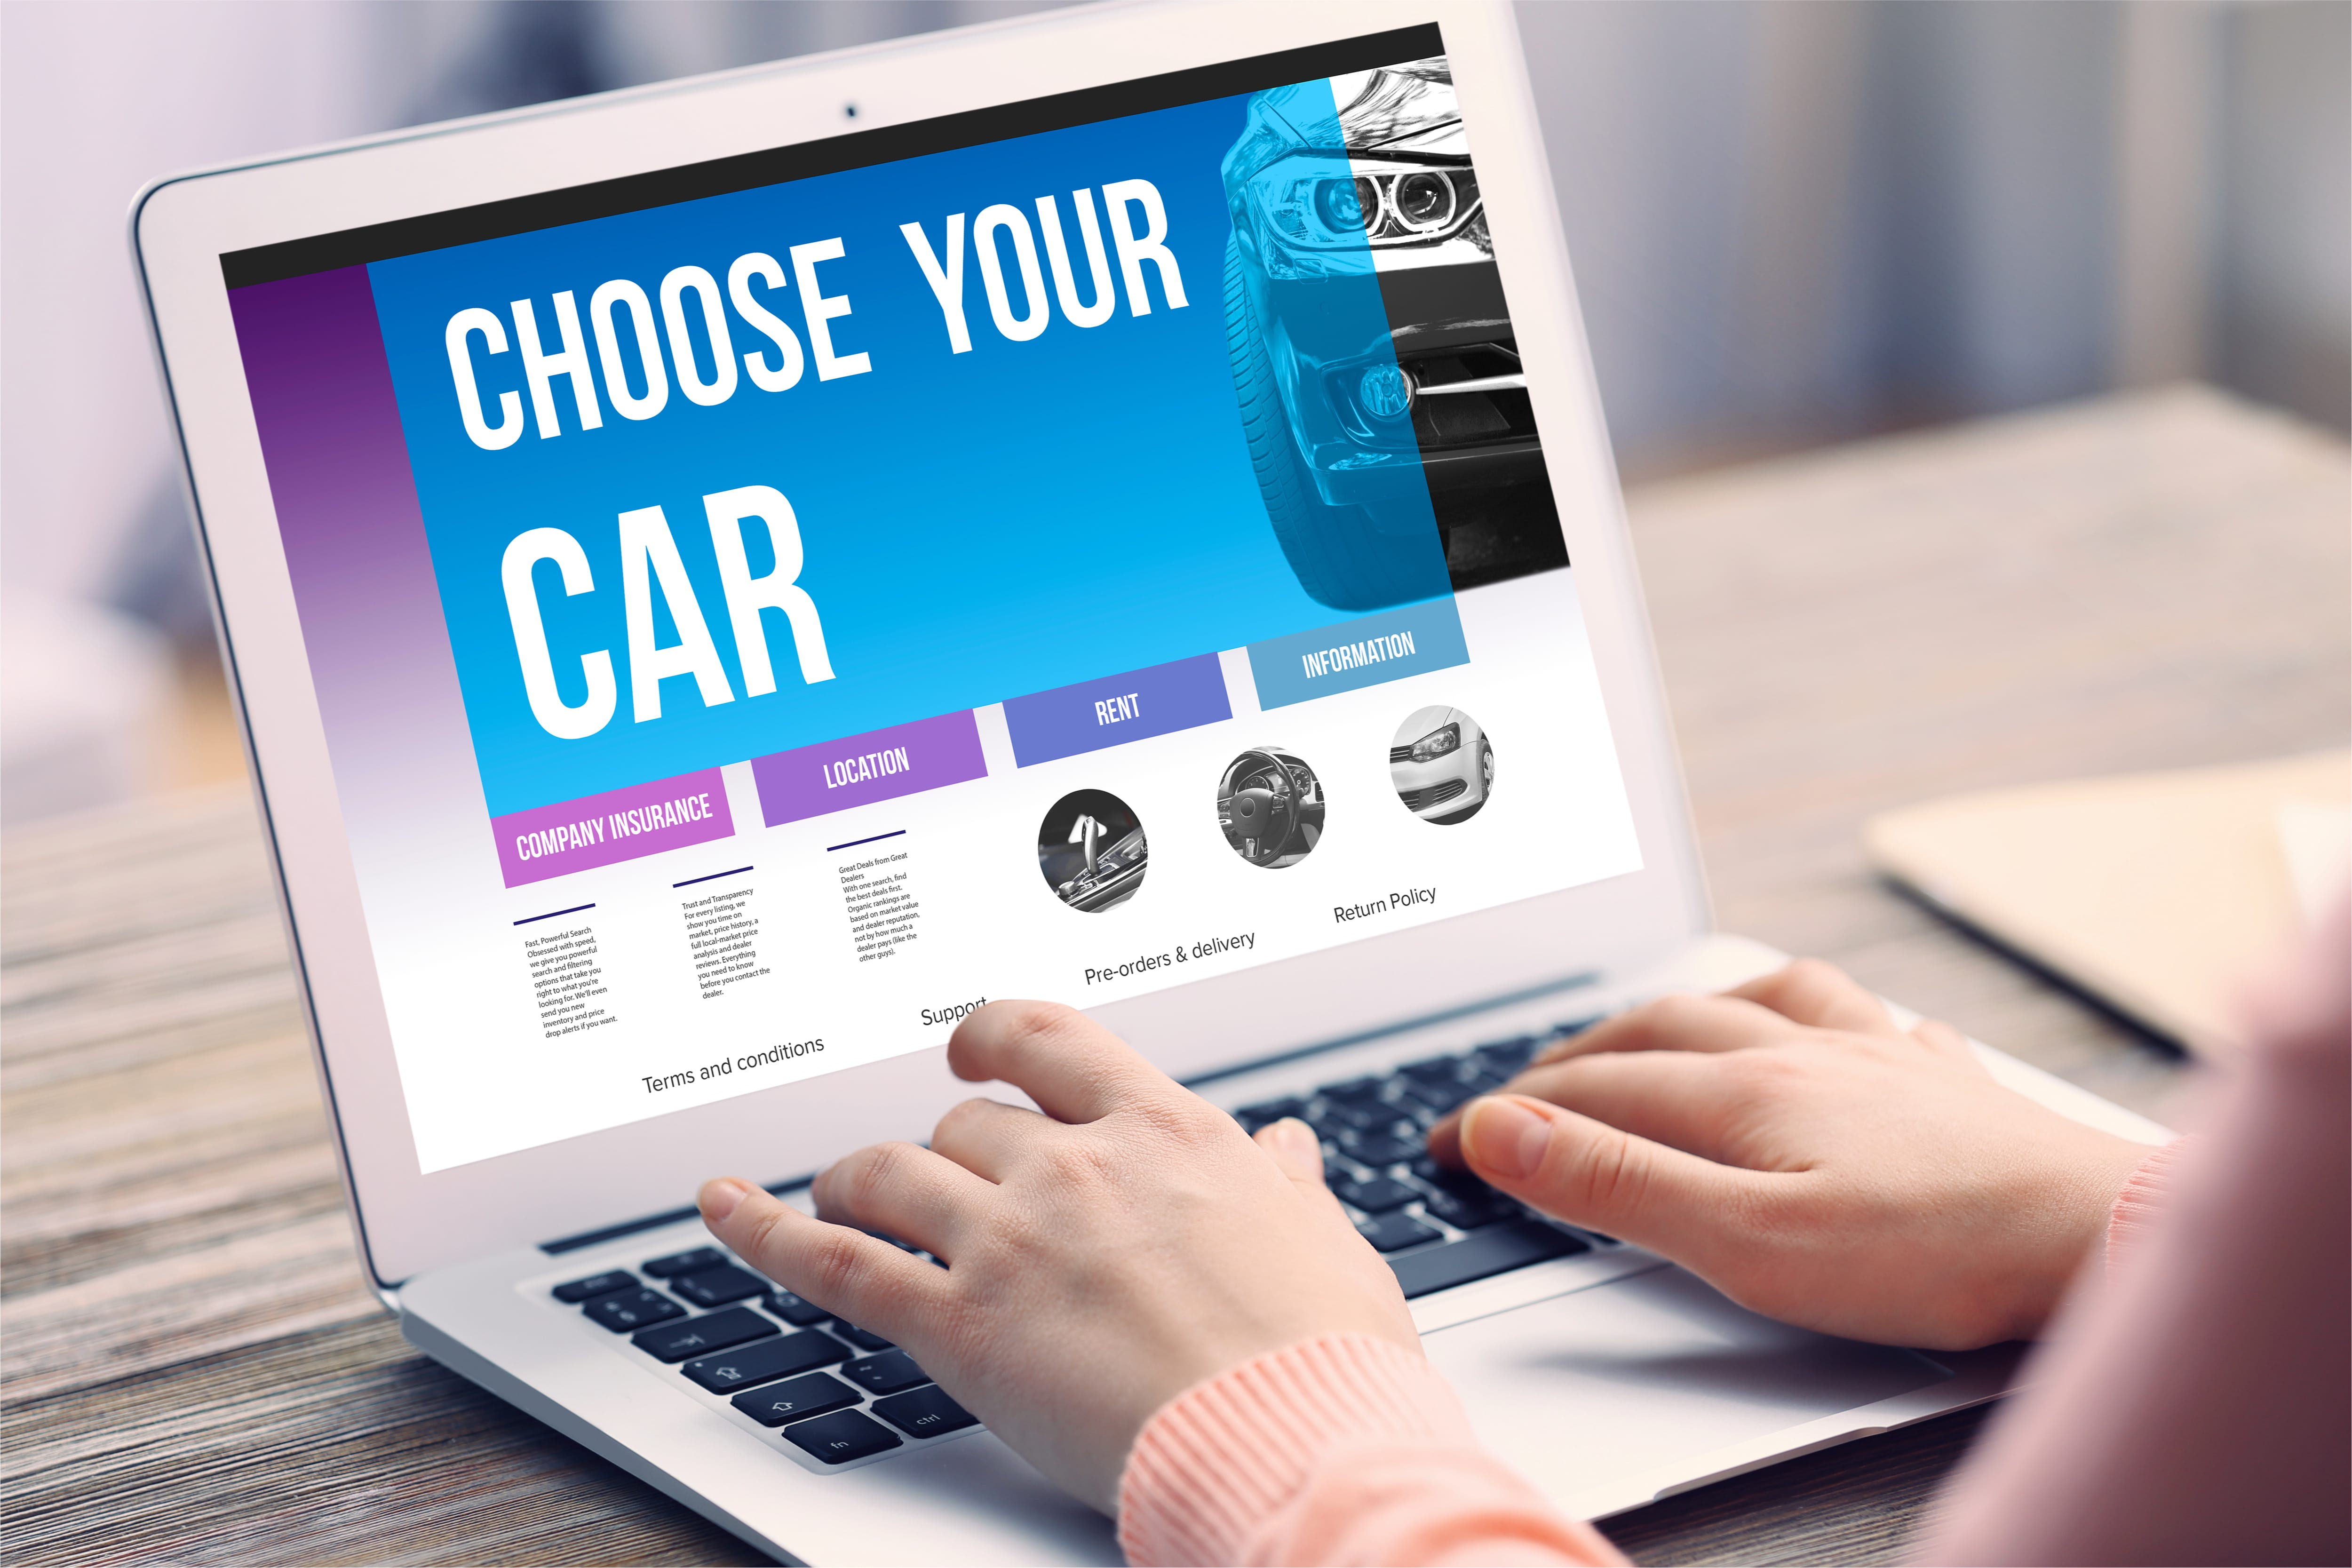 Online Car Sales >> How An Online Automotive Deal Is Fueling A Retail Trend